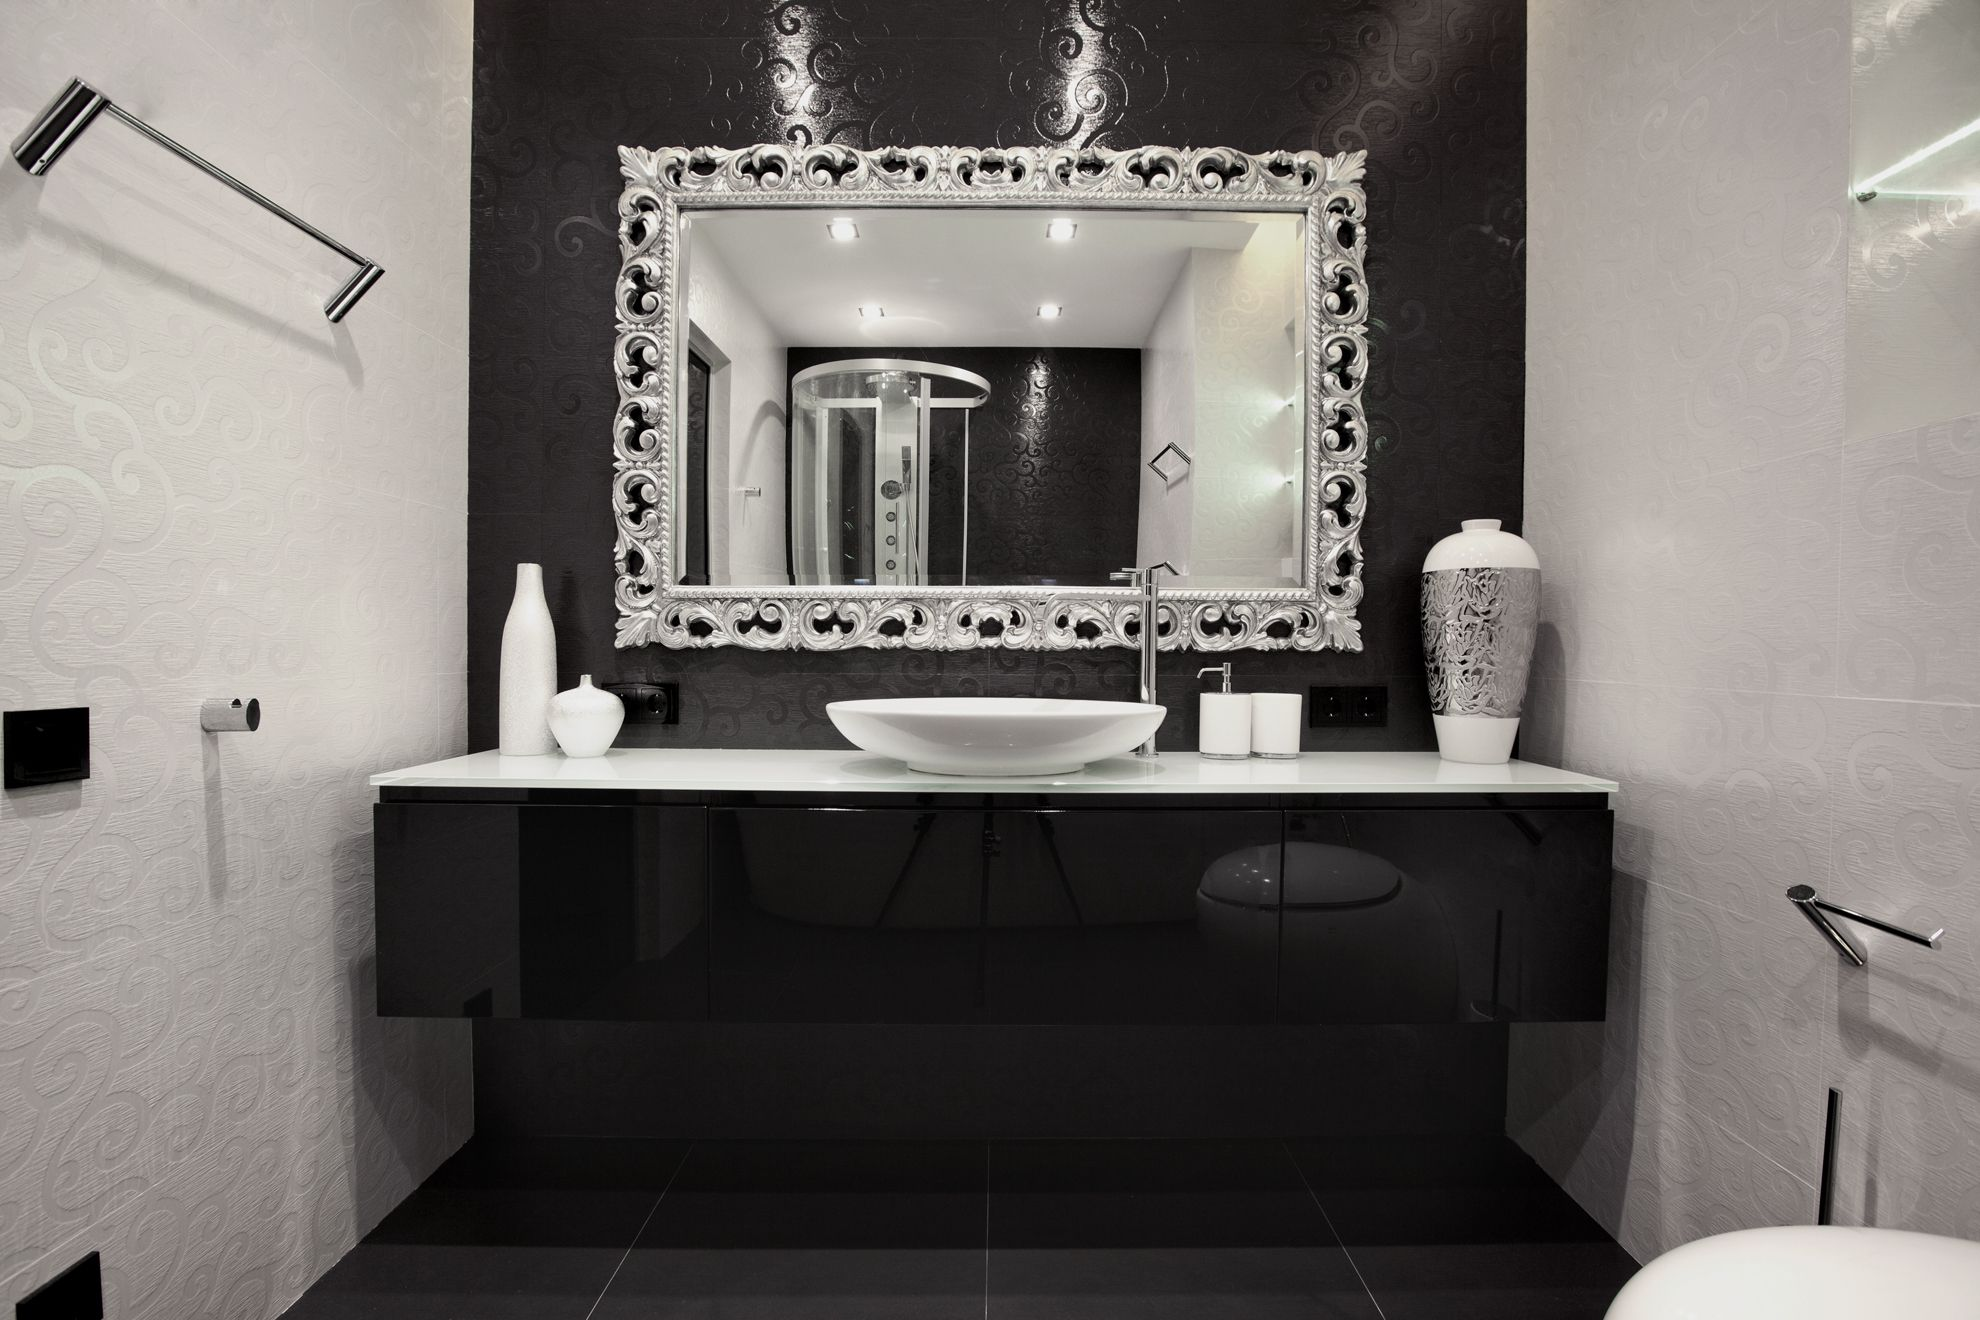 Bathroom Stunning Bathroom Mirror Design Ideas: Interior Entrancing ... - See more & Bathroom Stunning Bathroom Mirror Design Ideas: Interior Entrancing ...